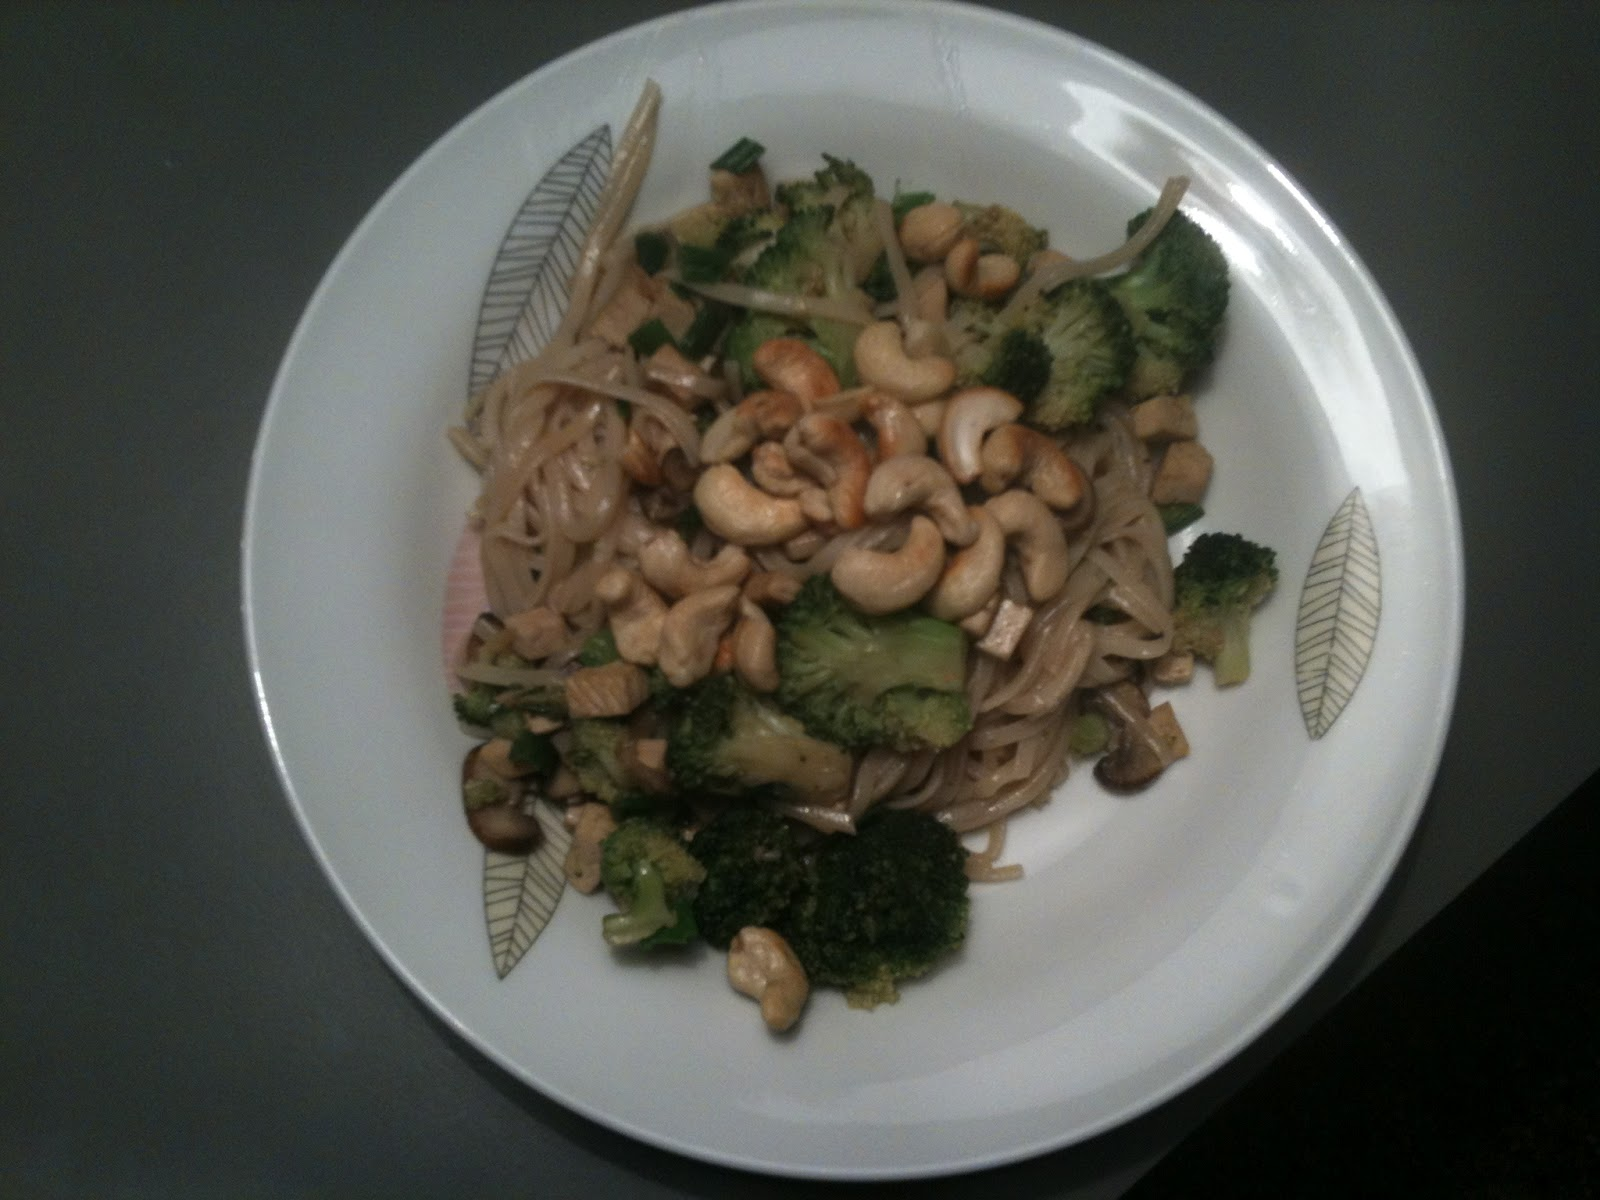 Meal-A-Day: Broccoli Mushroom Tofu Stir-Fry with Pan-Fried Cashews